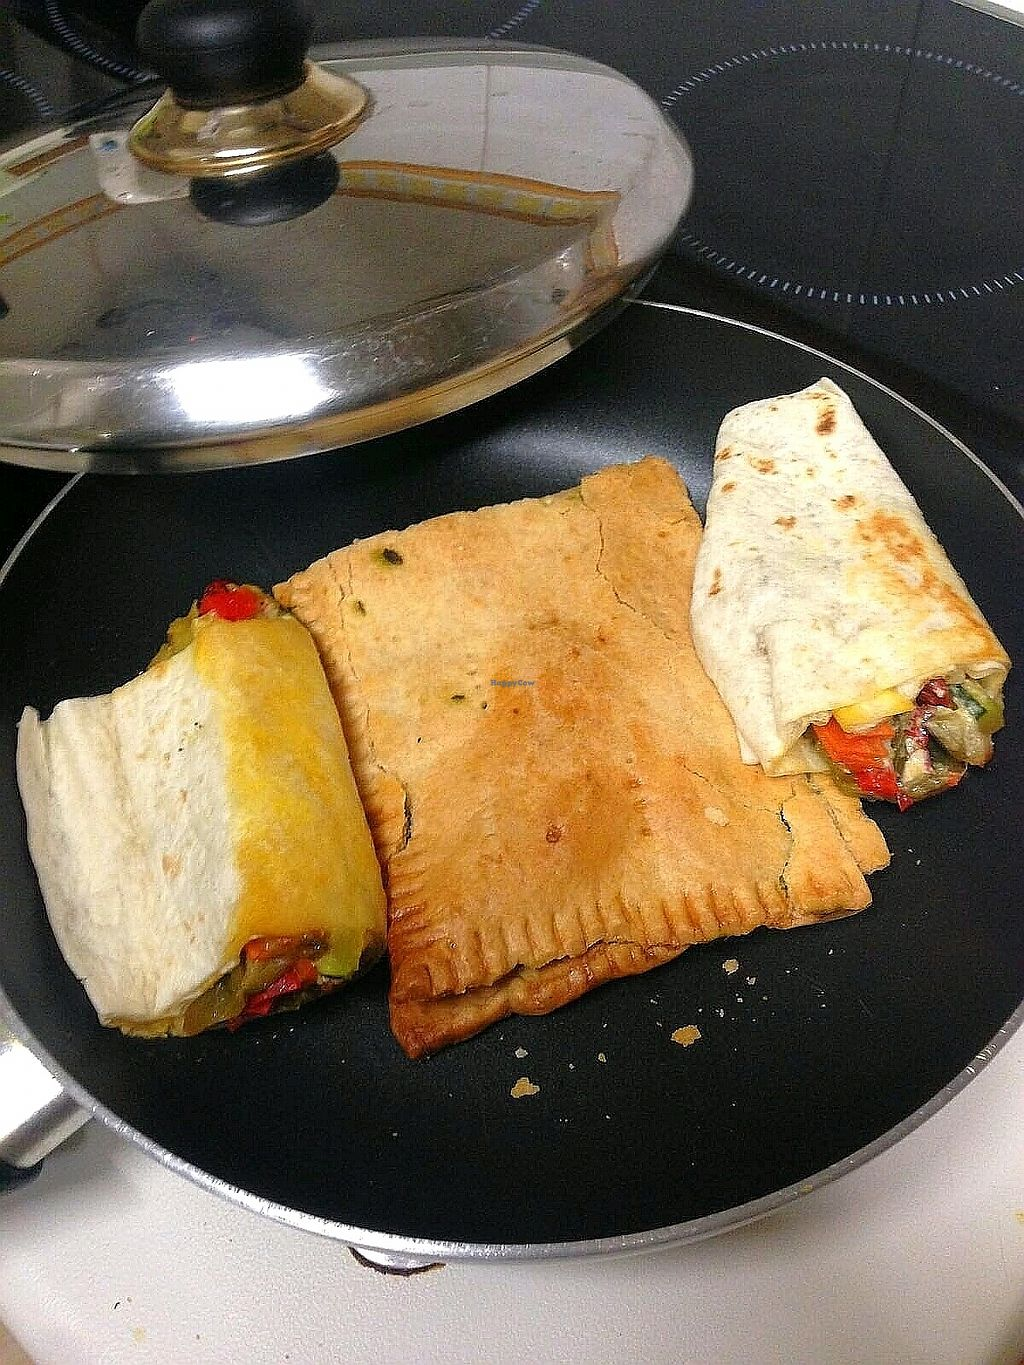 "Photo of Verdetariano  by <a href=""/members/profile/wyrd"">wyrd</a> <br/>burrito and empanada <br/> November 25, 2017  - <a href='/contact/abuse/image/104979/329132'>Report</a>"